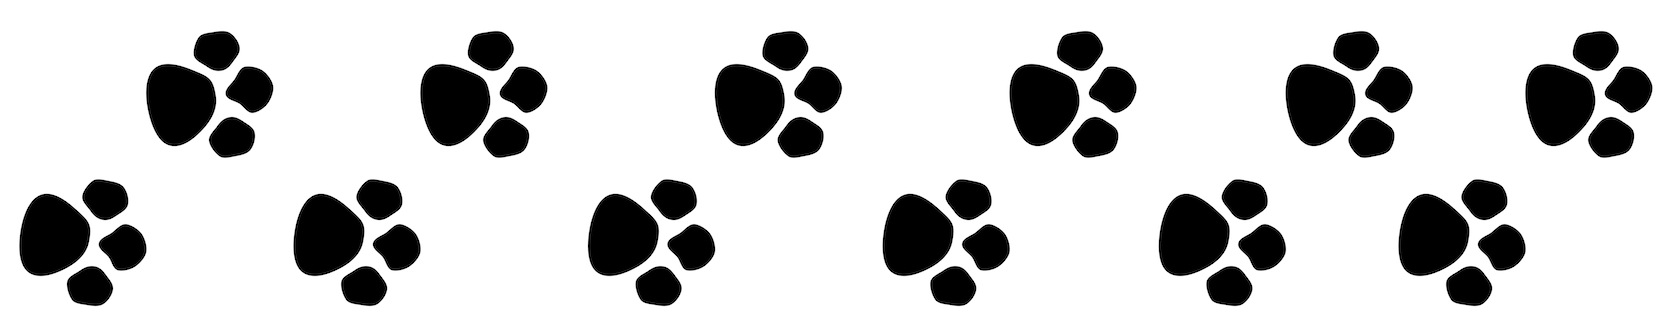 1667x331 Image Of Dog Paw Clipart